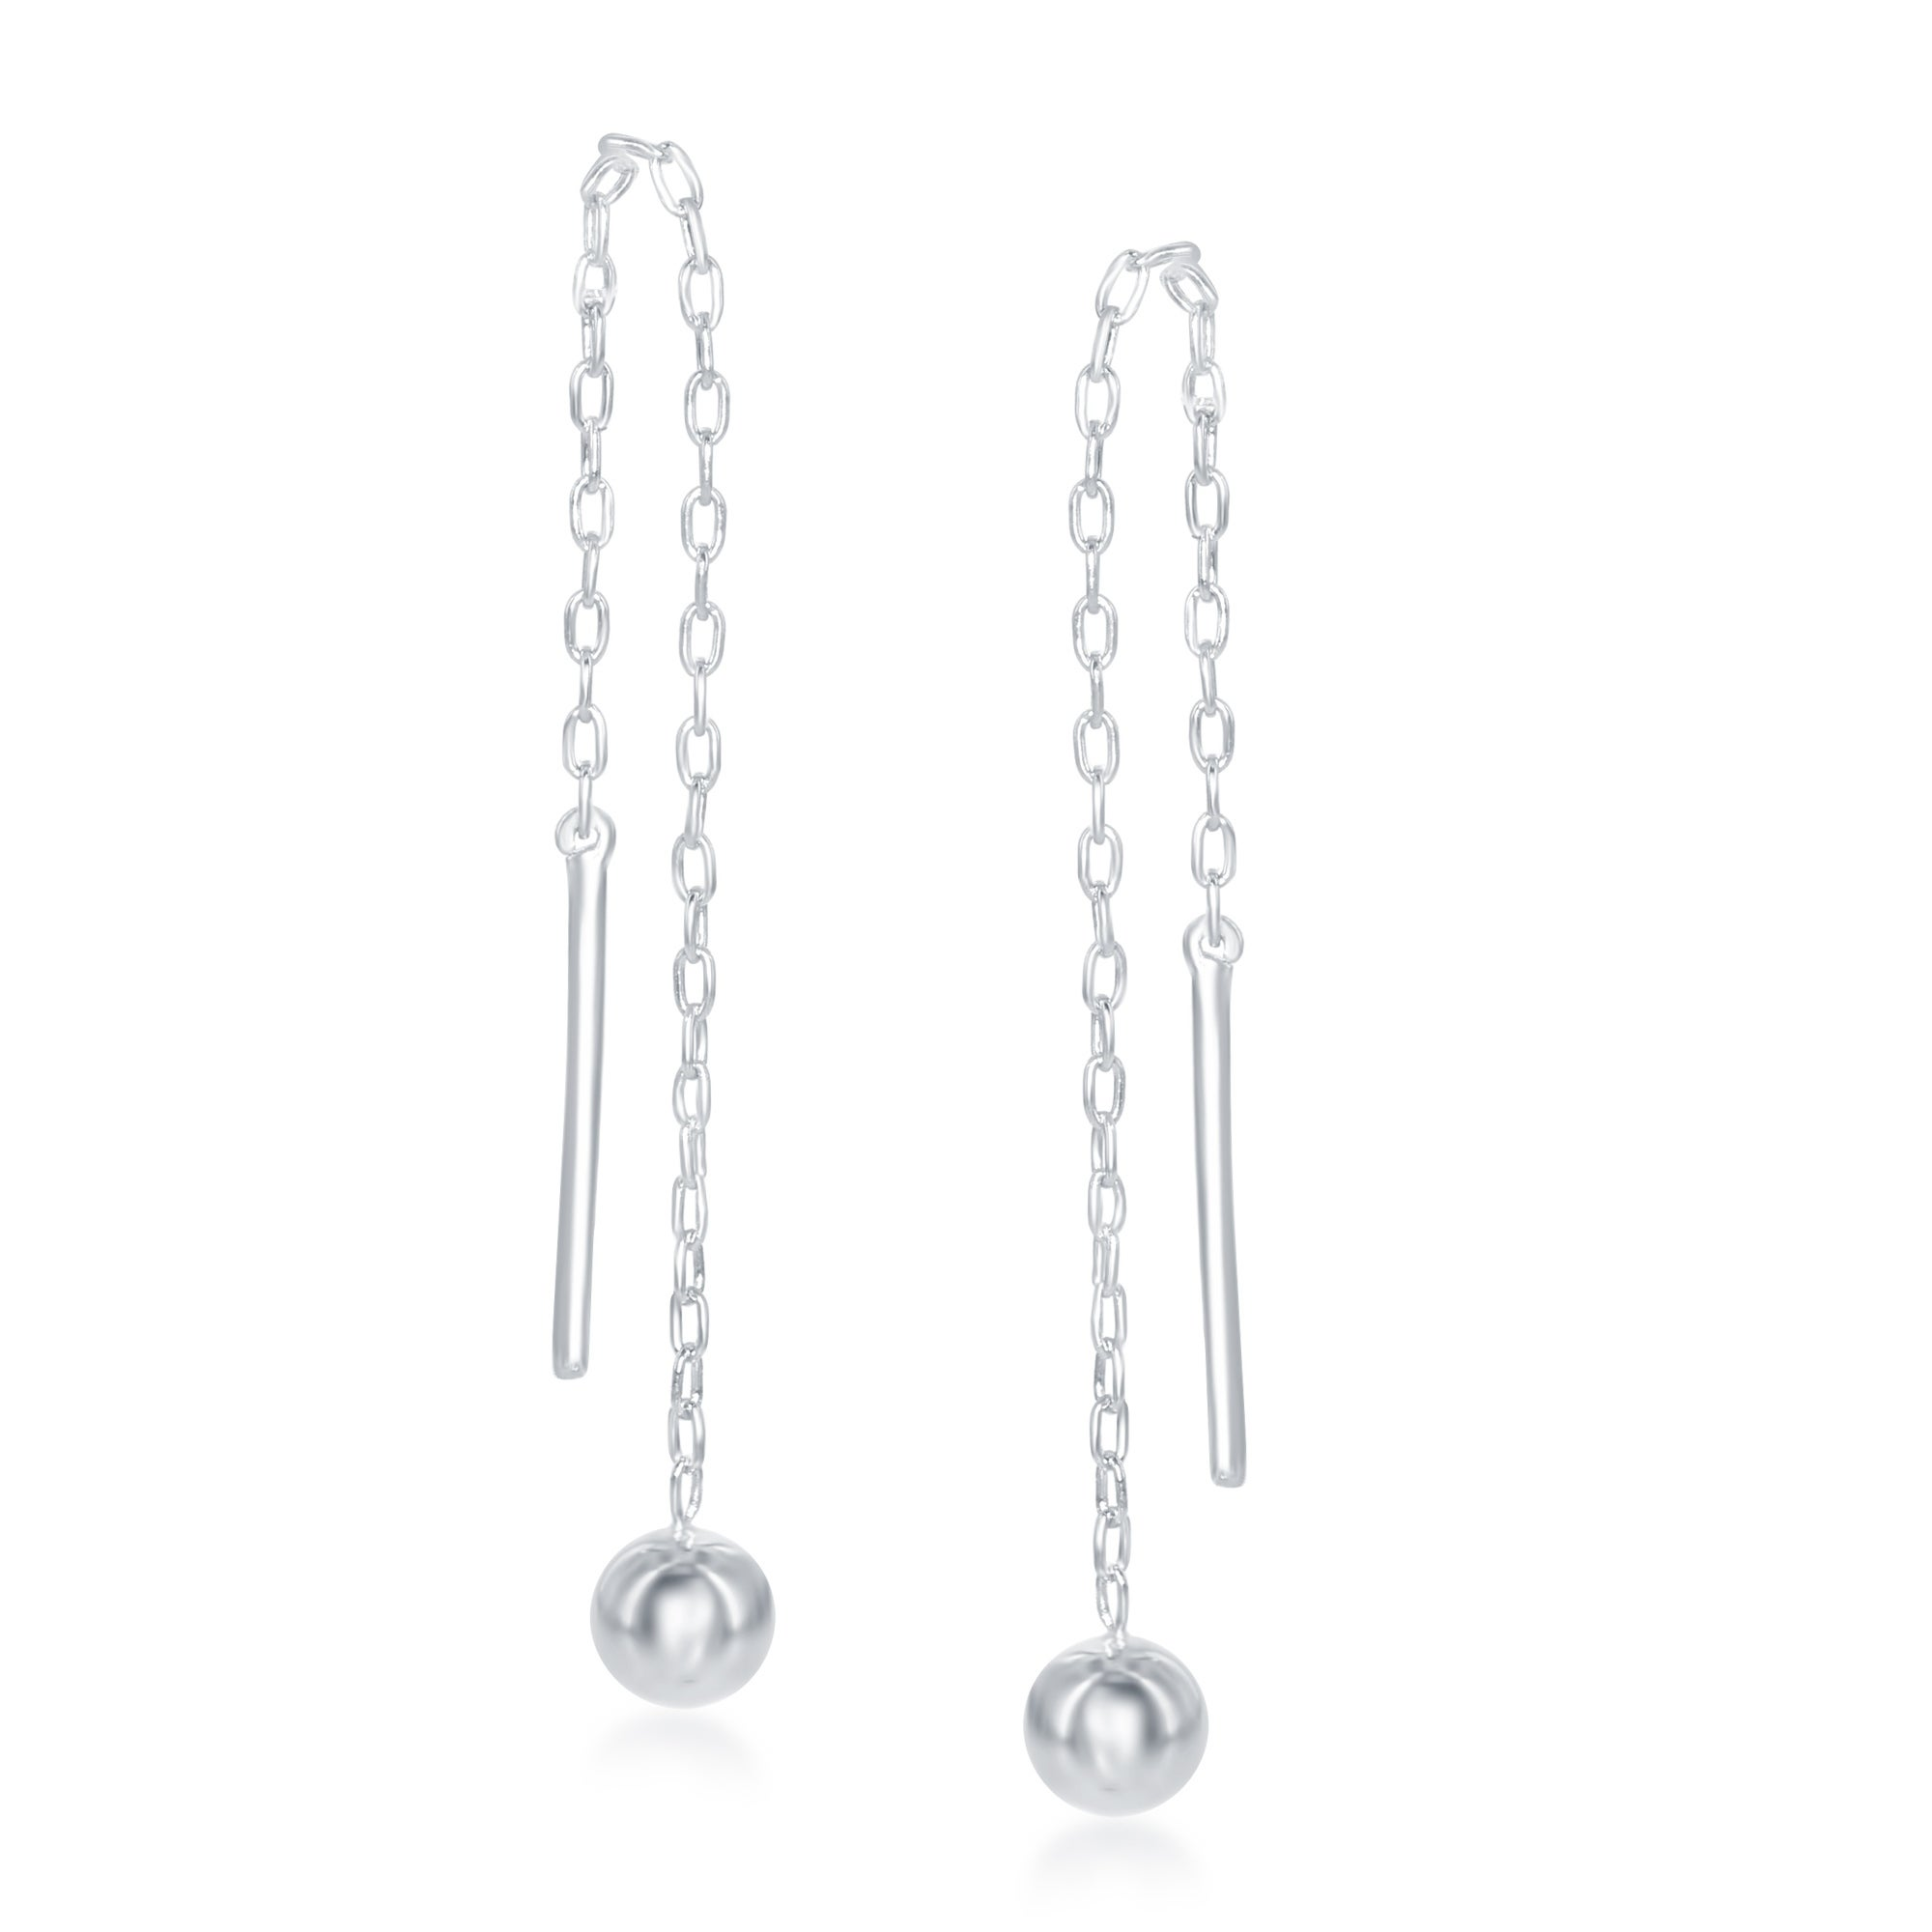 925 Sterling Silver Polished /& Diamond-cut Star Beaded Threader Earrings